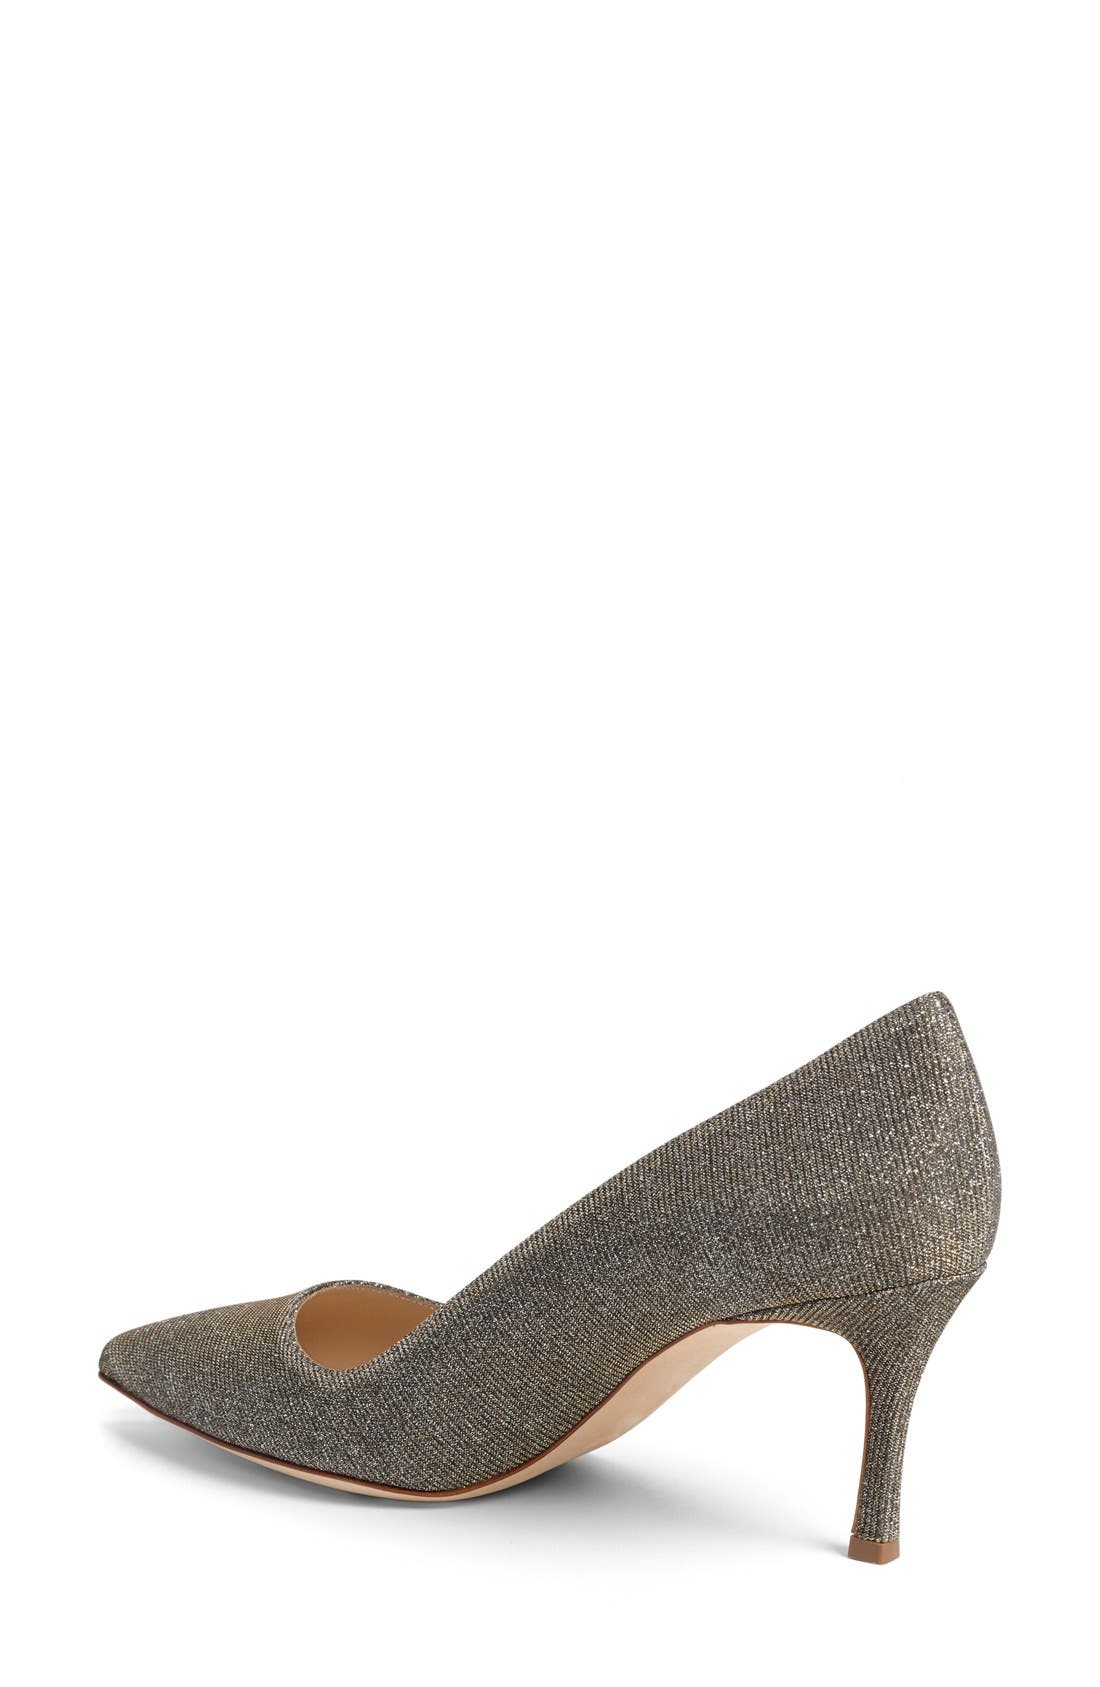 BB Pointy Toe Pump,                             Alternate thumbnail 30, color,